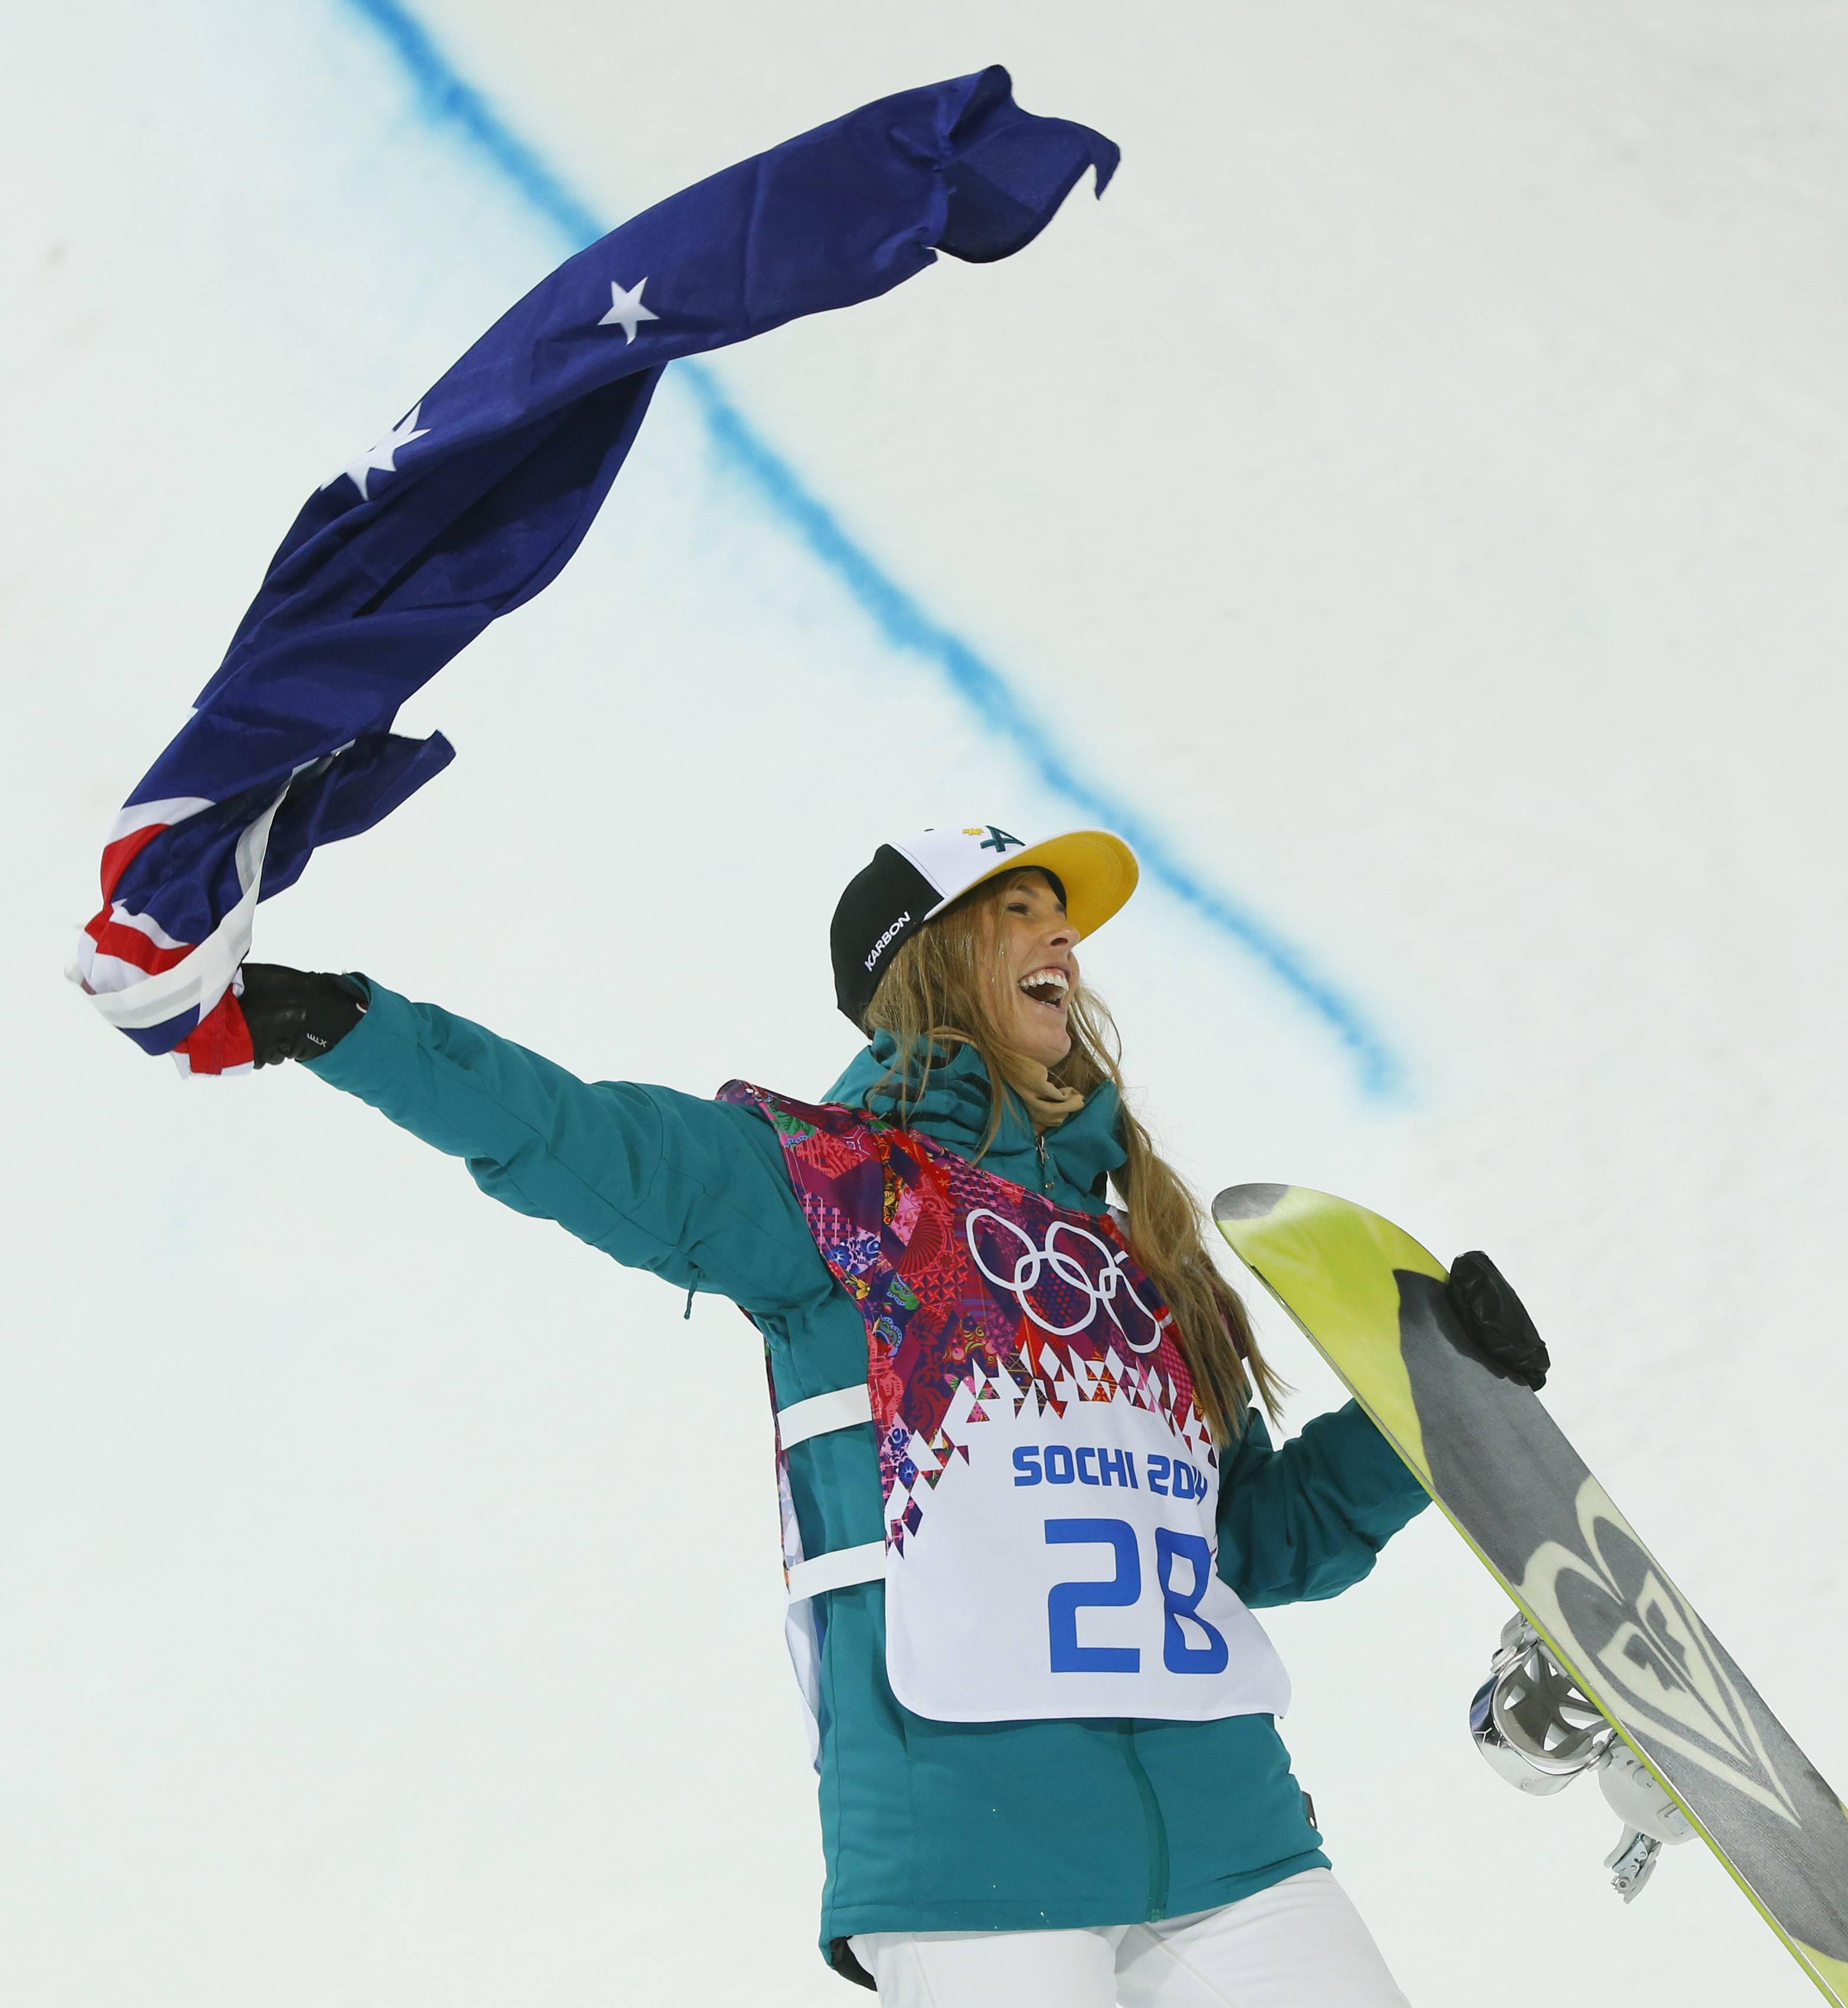 Australia's Torah Bright celebrates her silver medal in the women's snowboard halfpipe final at the Rosa Khutor Extreme Park, at the 2014 Winter Olympics, Wednesday, Feb. 12, 2014, in Krasnaya Polyana, Russia. (AP Photo/Sergei Grits)